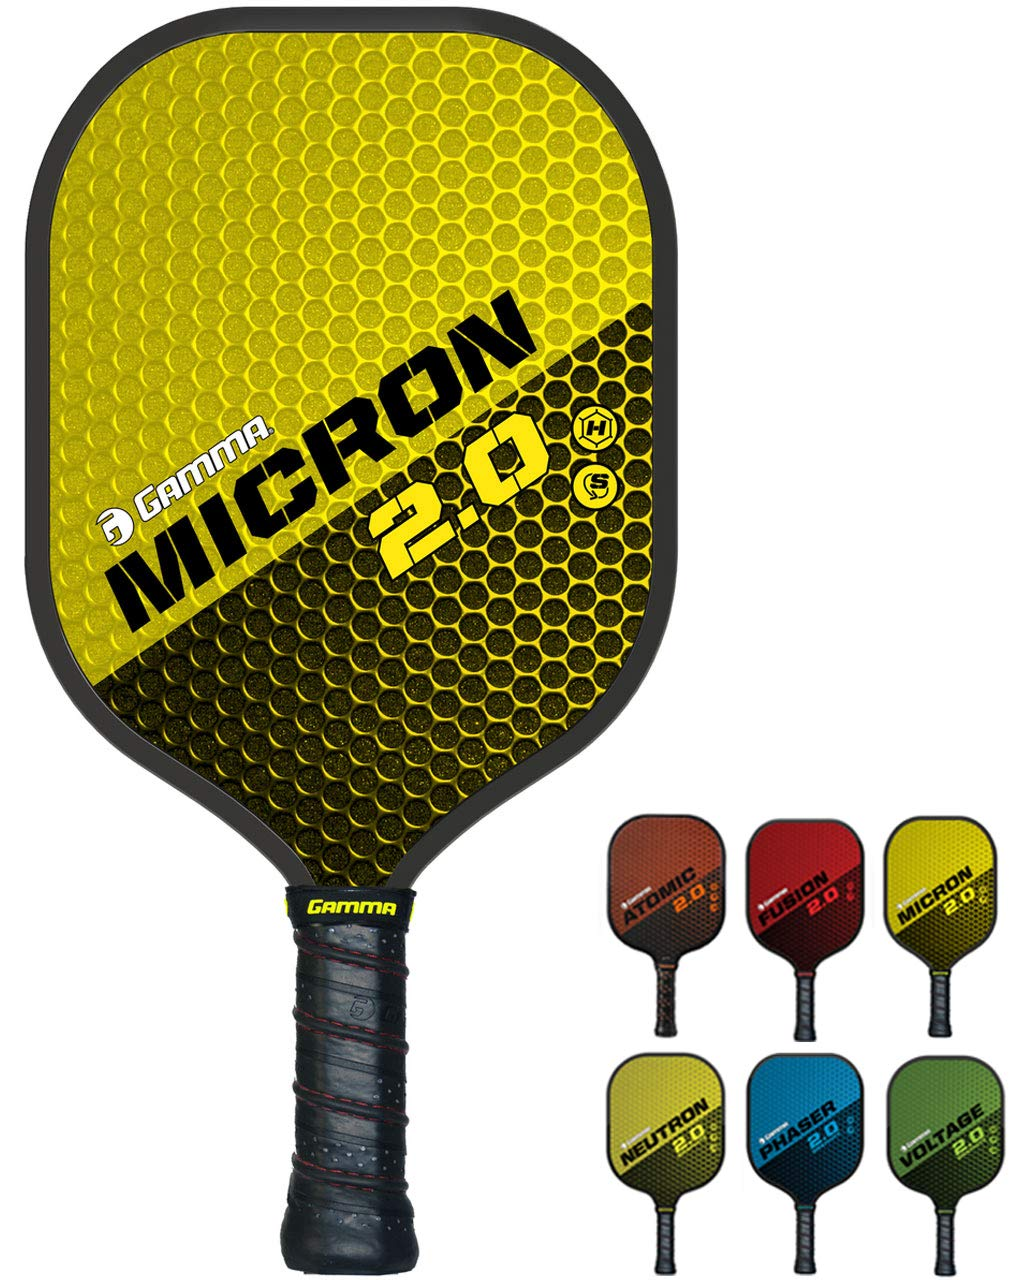 GAMMA Sports 2.0 Pickleball Paddles: Micron 2.0 Pickleball Rackets - Textured Fiberglass Face - Mens and Womens Pickle Ball Racquet - Indoor and Outdoor Racket - Yellow Pickle-Ball Paddle - 7.6 oz by Gamma